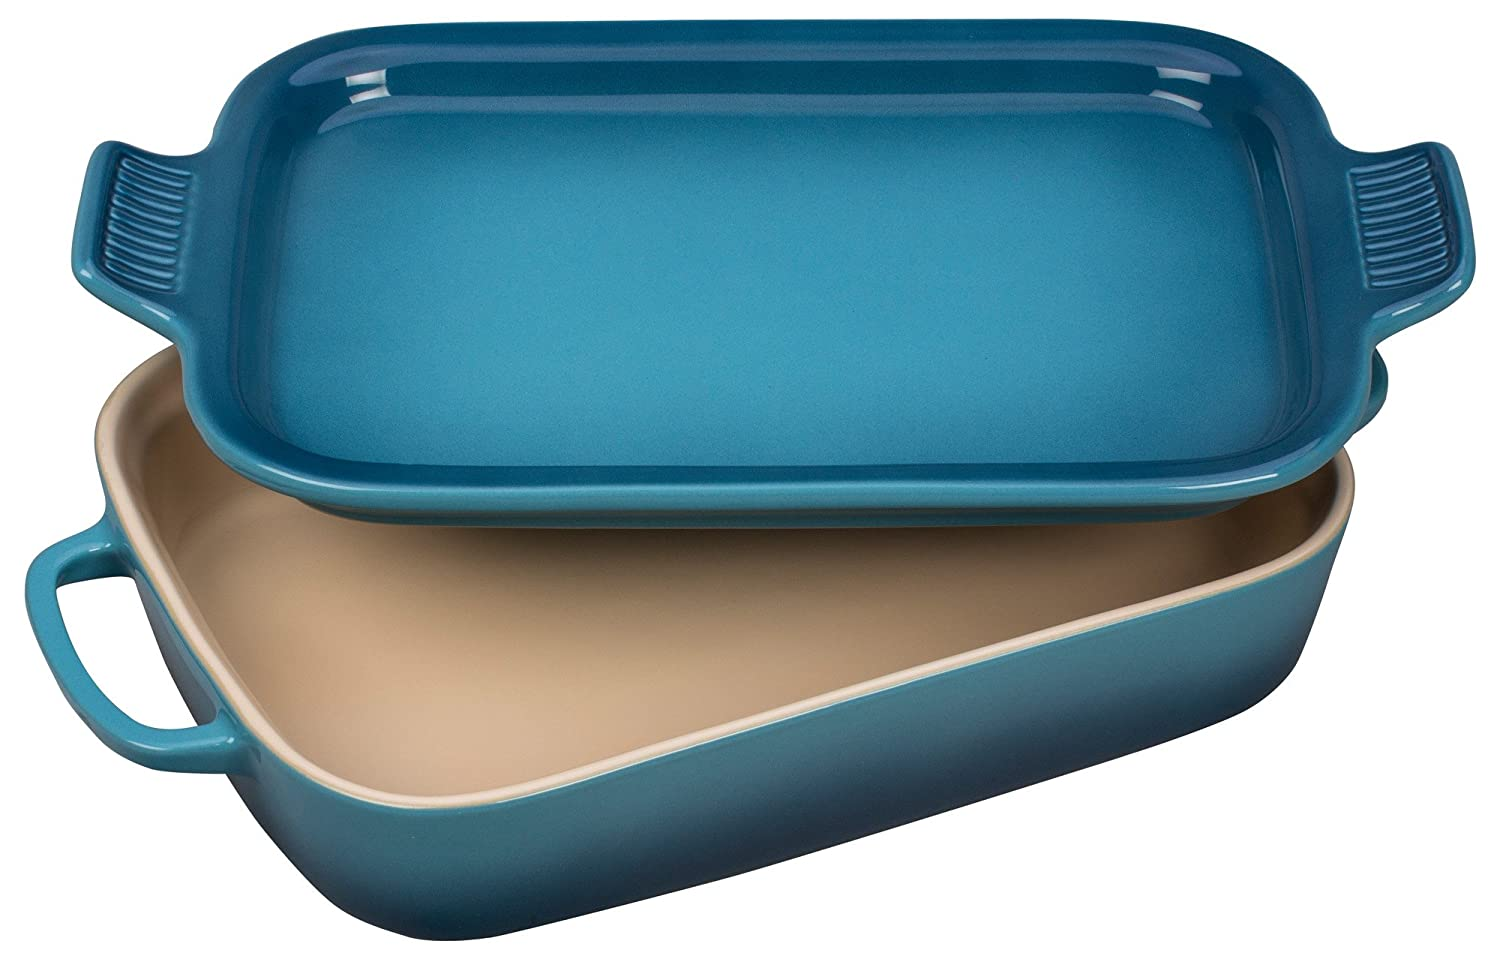 Le Creuset Stoneware Rectangular Dish with Platter Lid, 14 3/4 x 9 x 2 1/2, Caribbean PG2015-1317